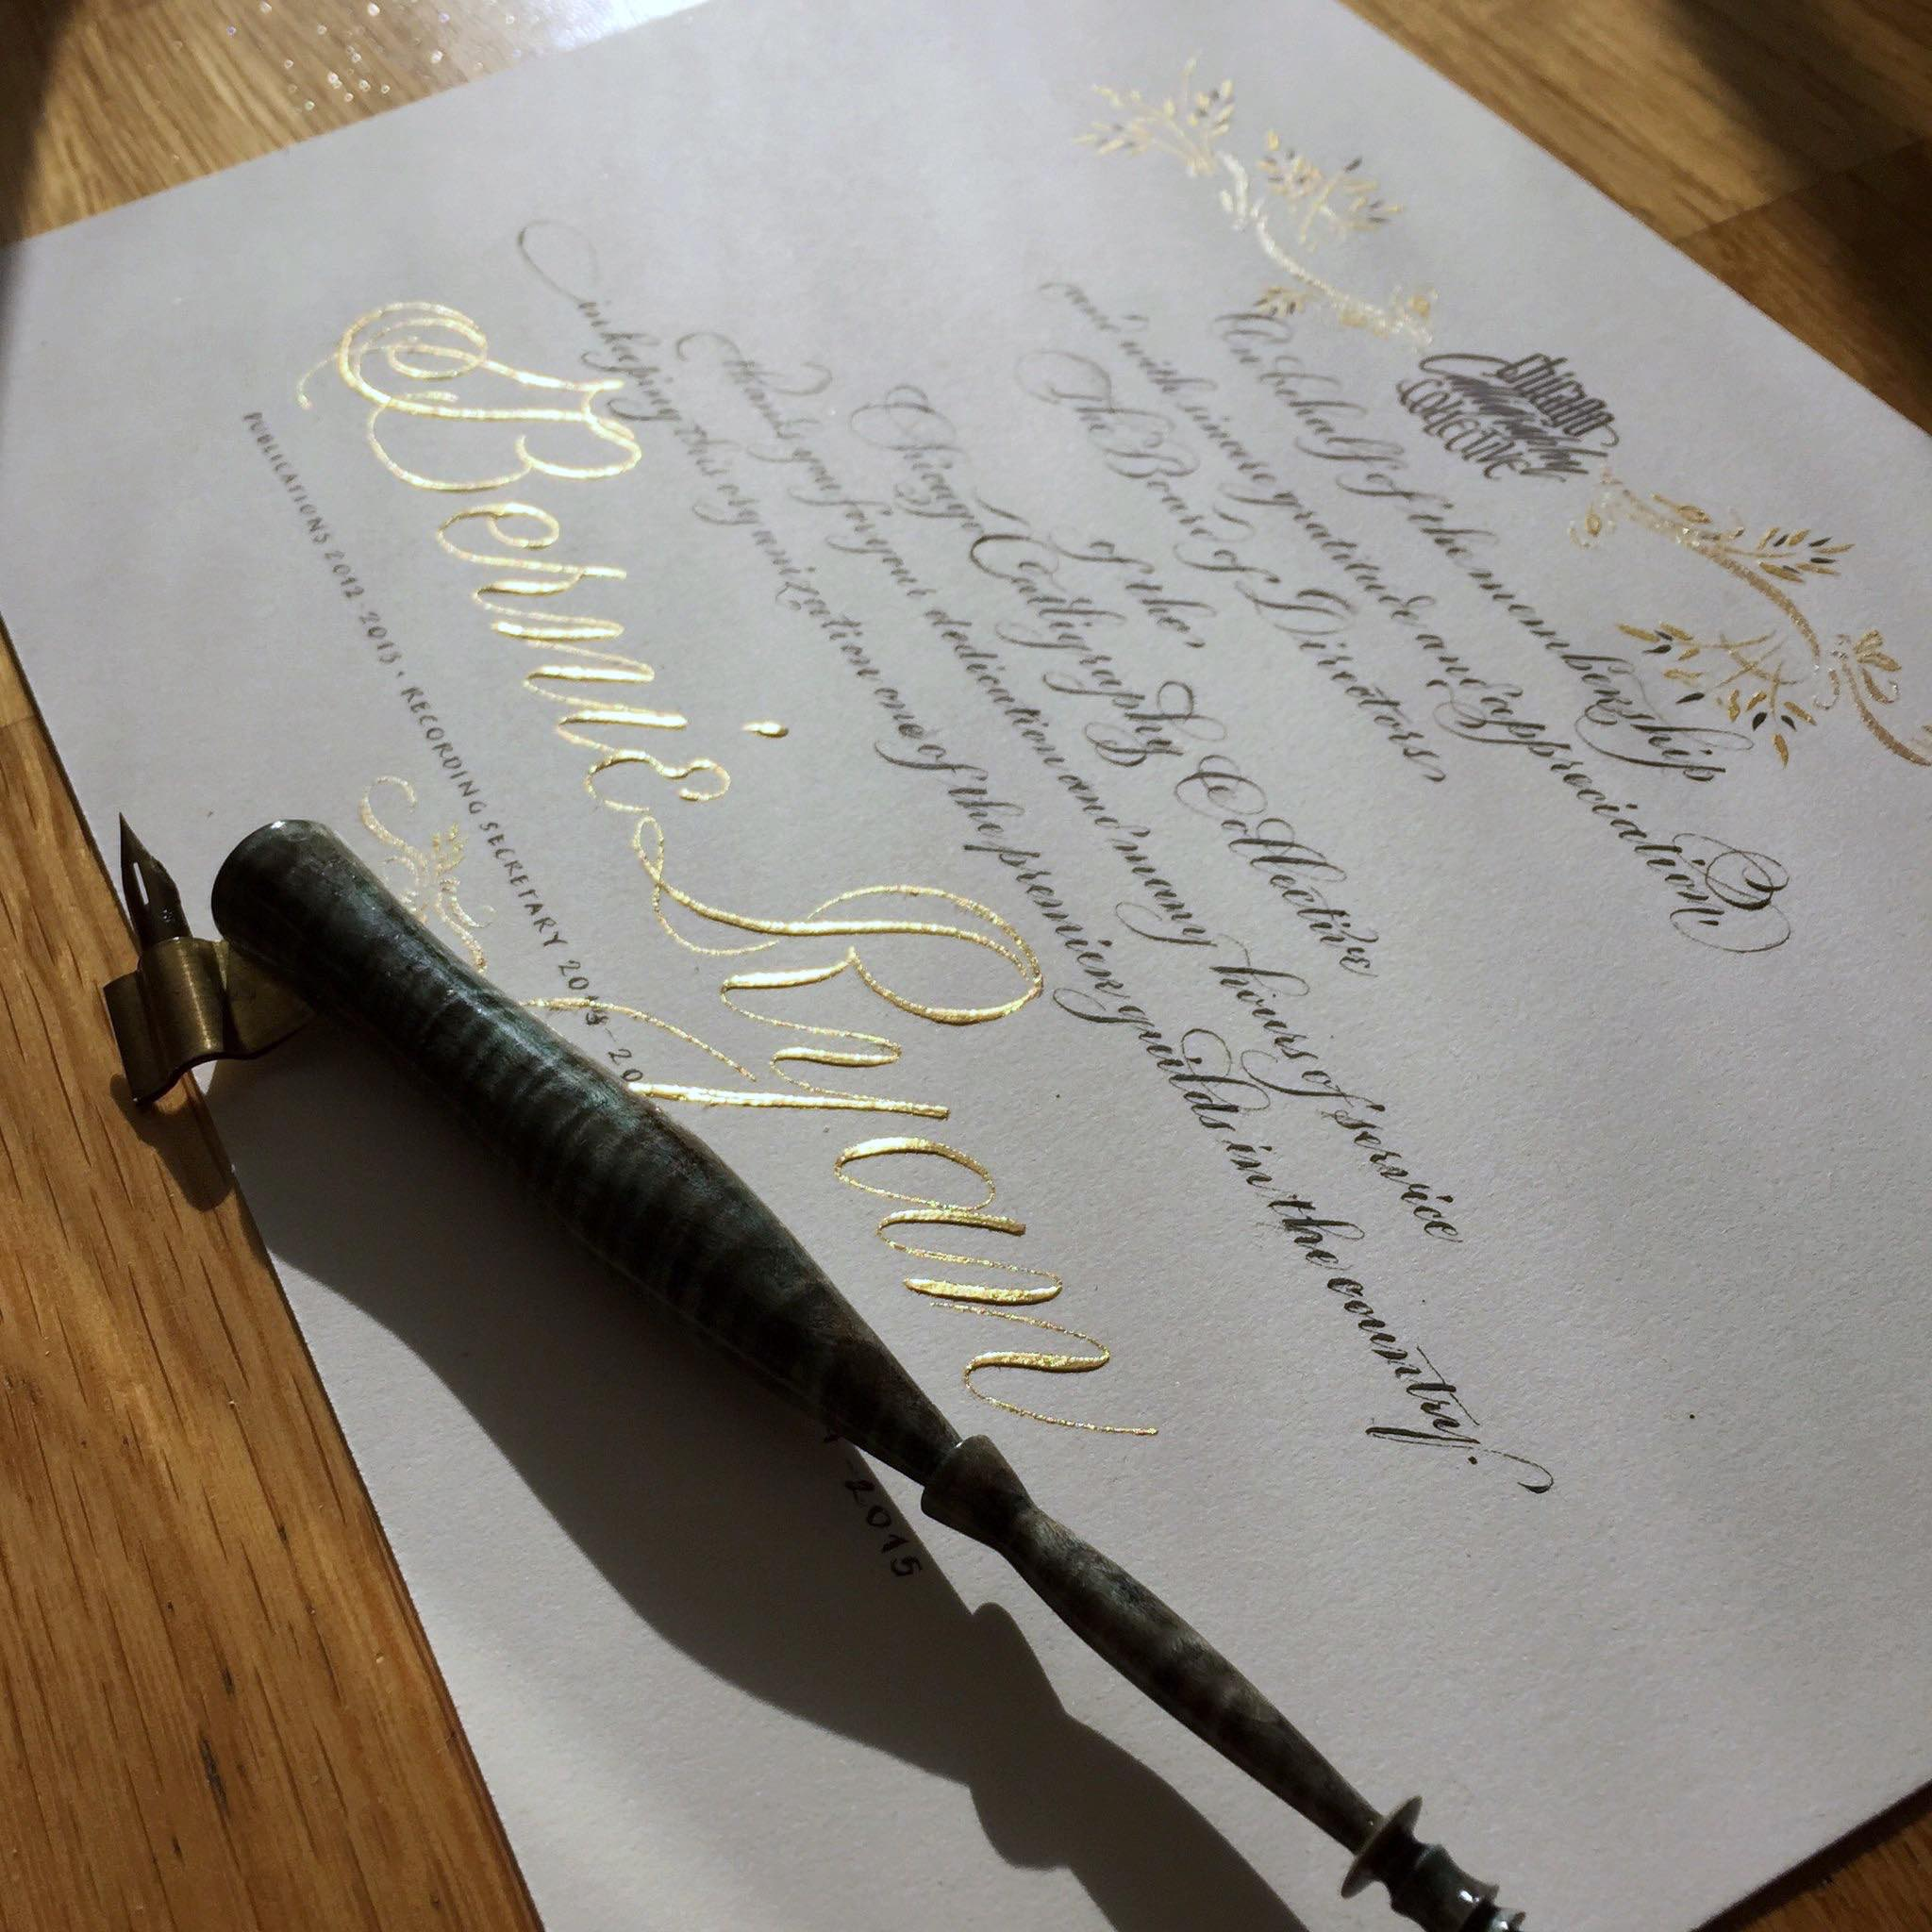 Certificate gilded in 23k gold leaf, commissioned by the Chicago Calligraphy Collective